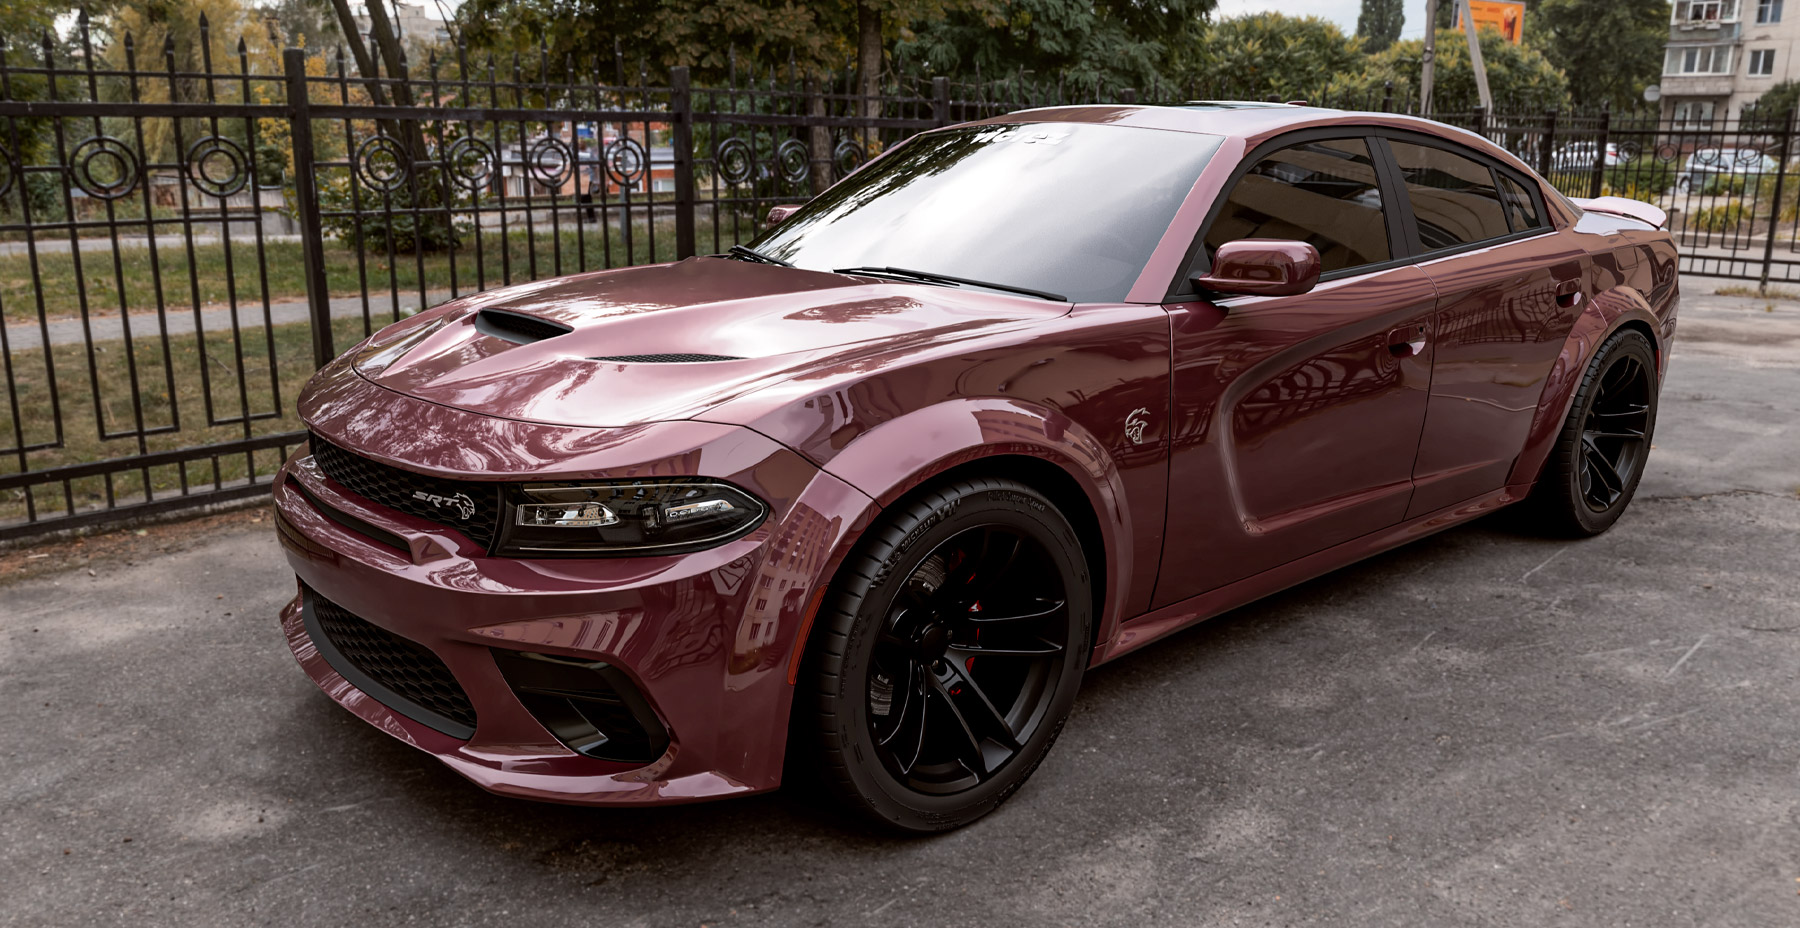 Red Octane Dodge Charger Widebody x Hellcat Widebody Style Matte Black Wheel